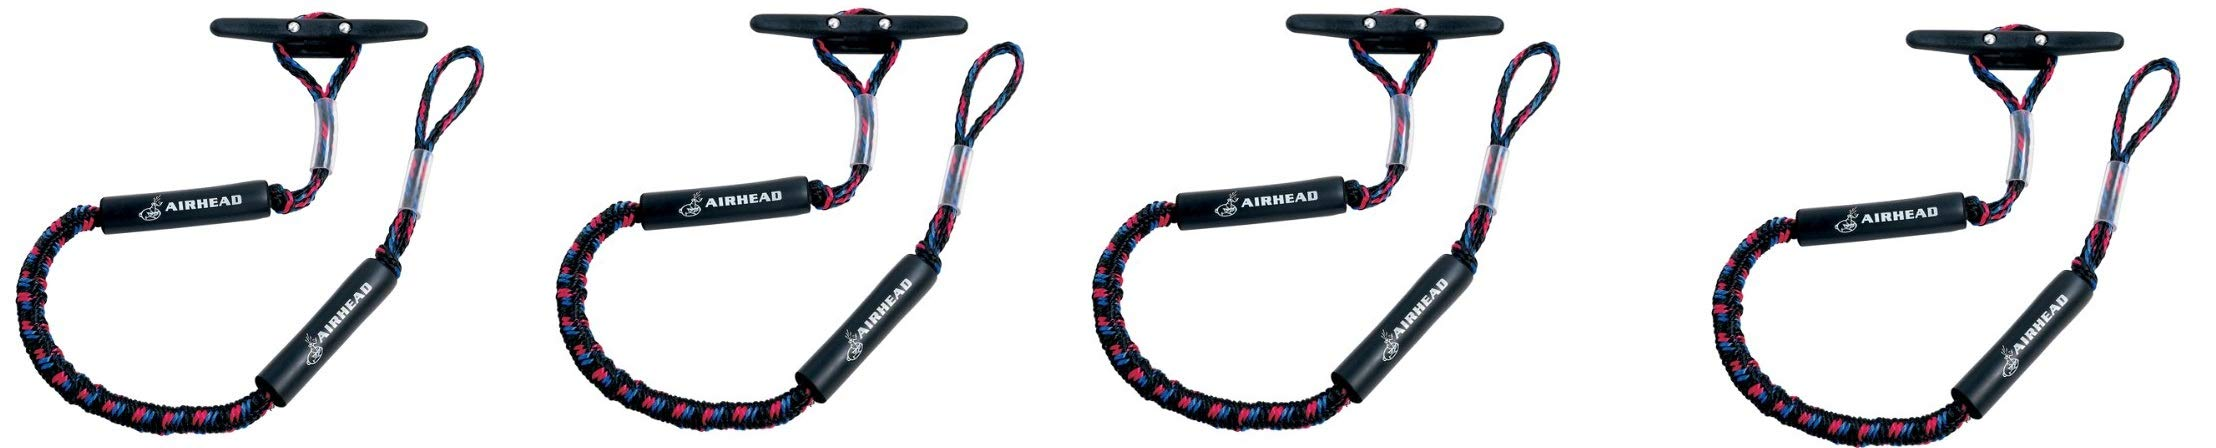 Airhead AHDL-4 Bungee Dockline 4 Feet (Pack of 4) by Airhead (Image #1)